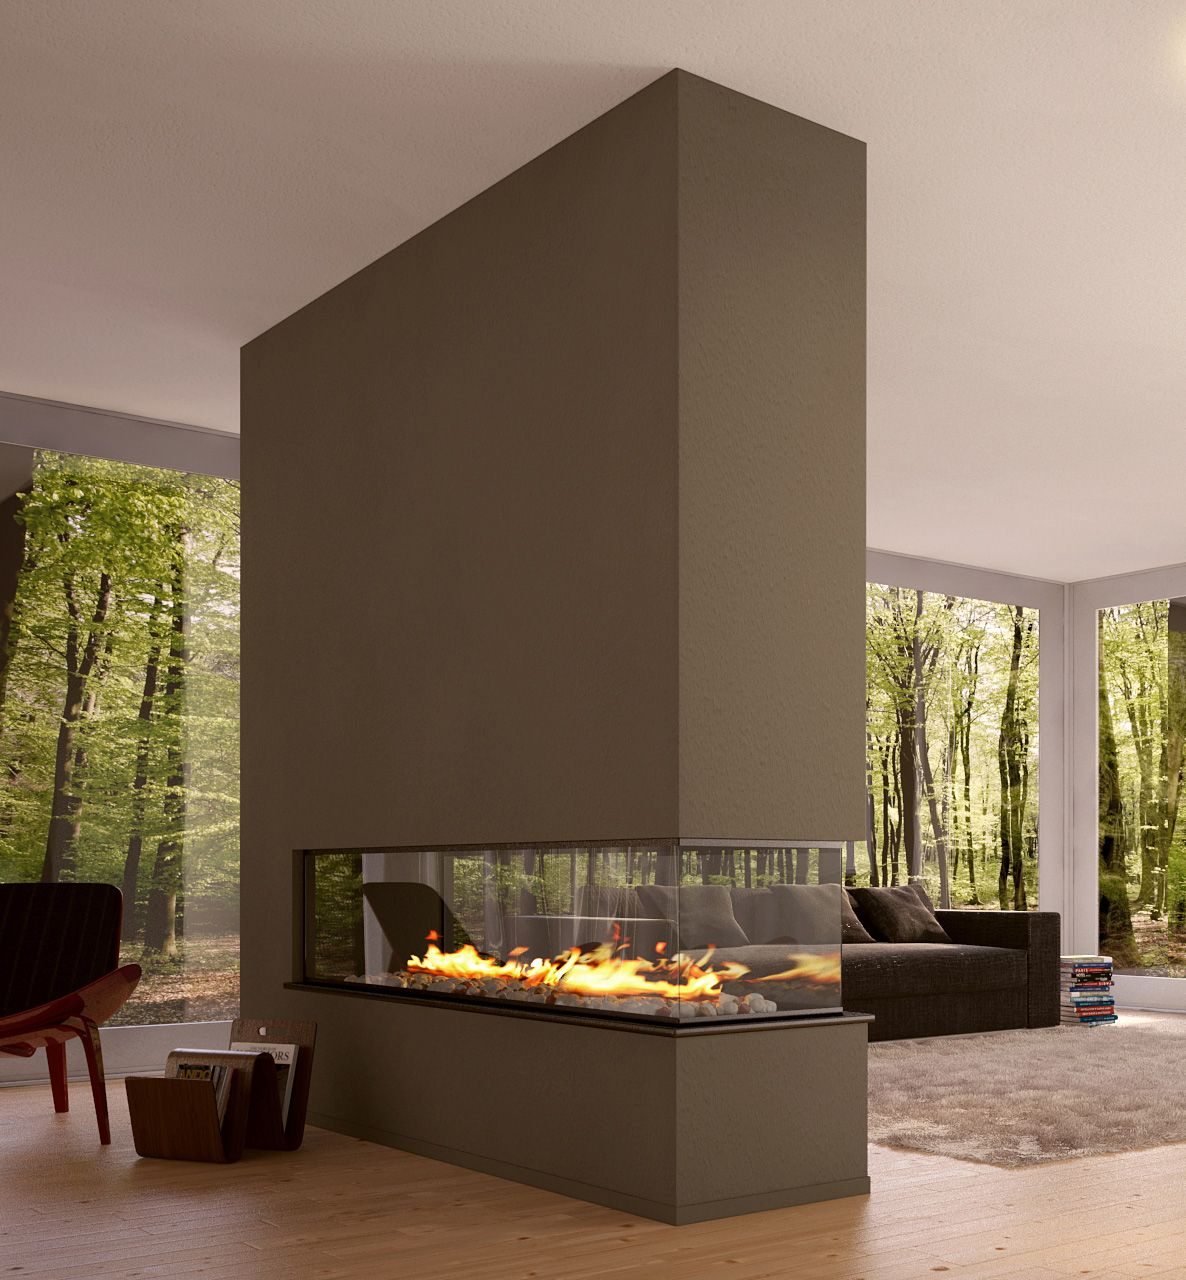 Fascinating Fireplaces Modern Design Room Divider Eco House Interior Love This One The Right Place For Fire And Best View Ever